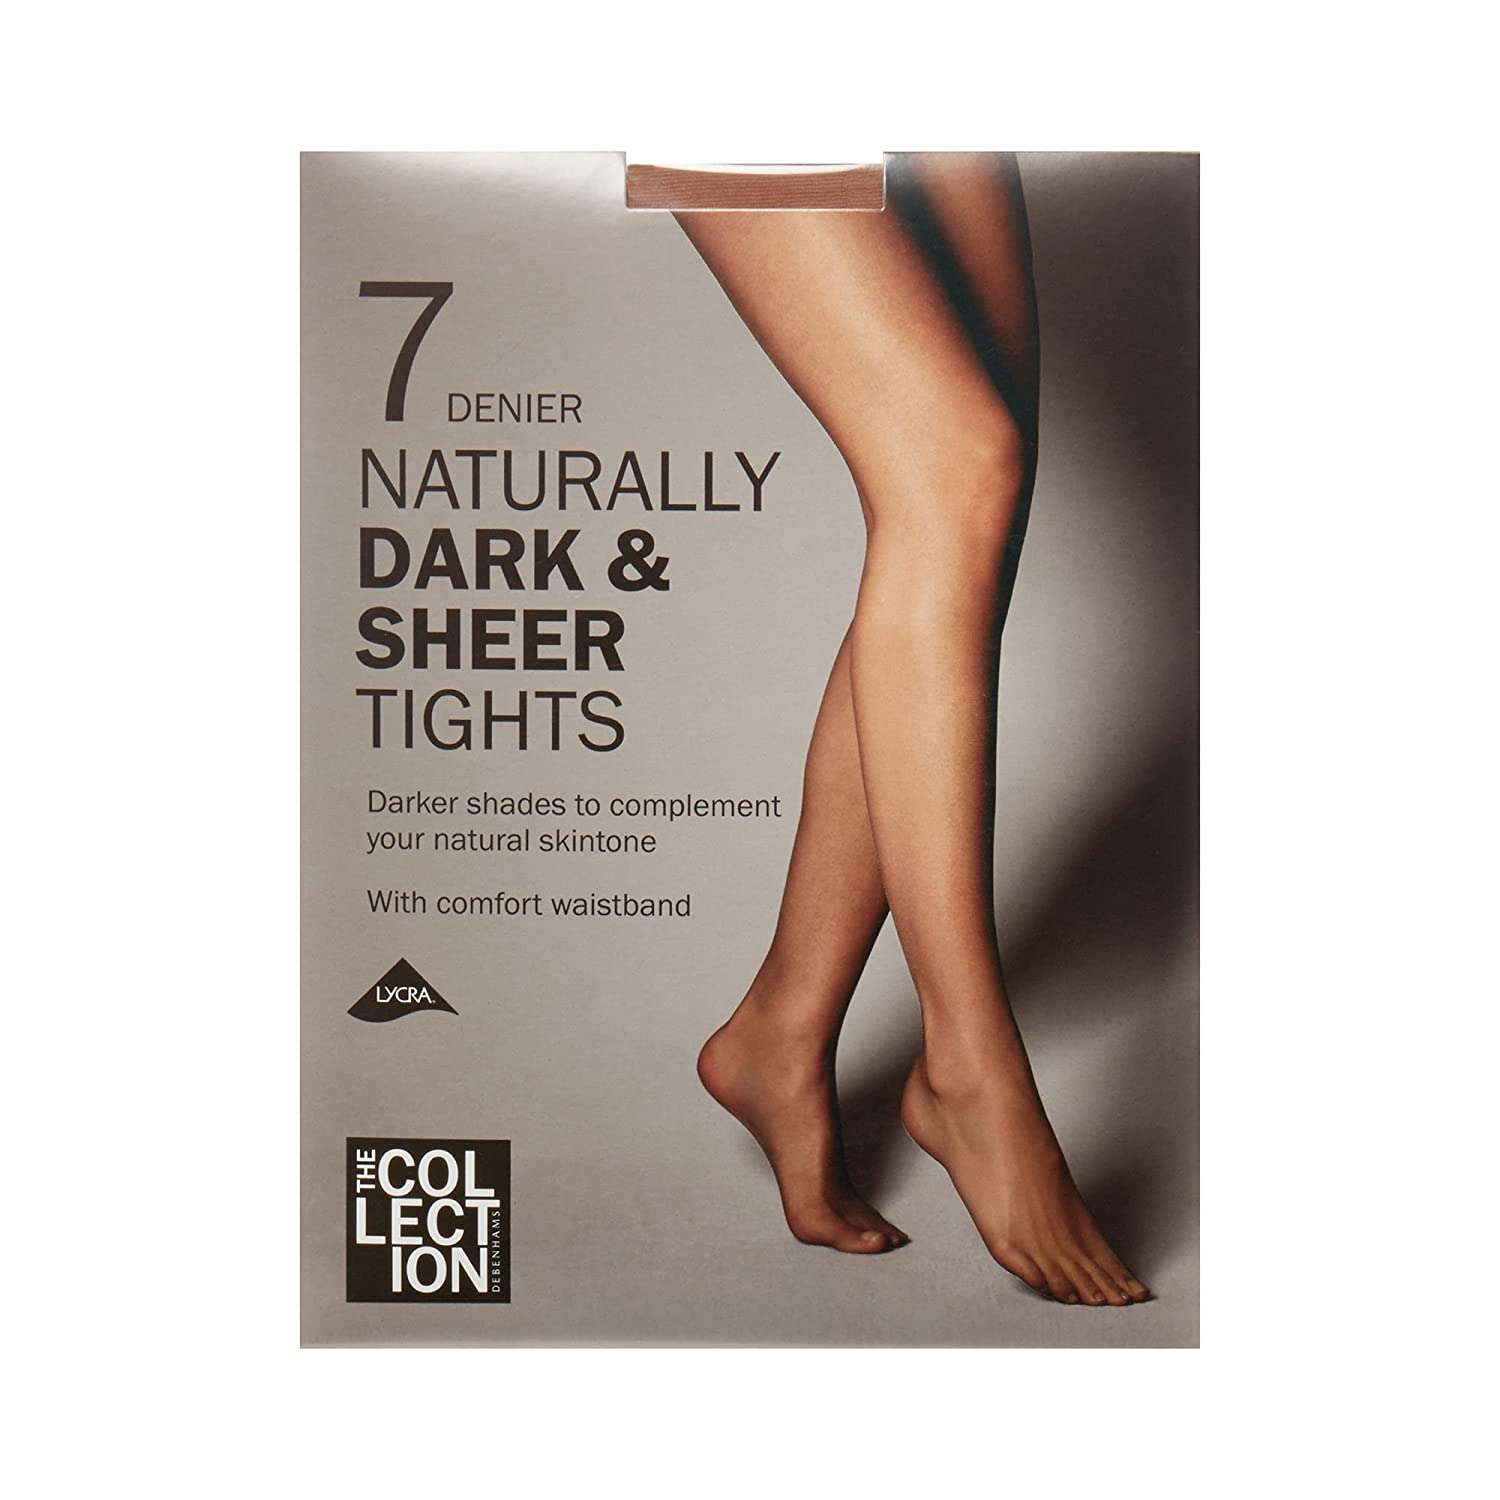 d9de1983053bc The Collection Womens Bronze Naturally Dark And Sheer 7 Denier Tights:  Debenhams: Amazon.co.uk: Clothing